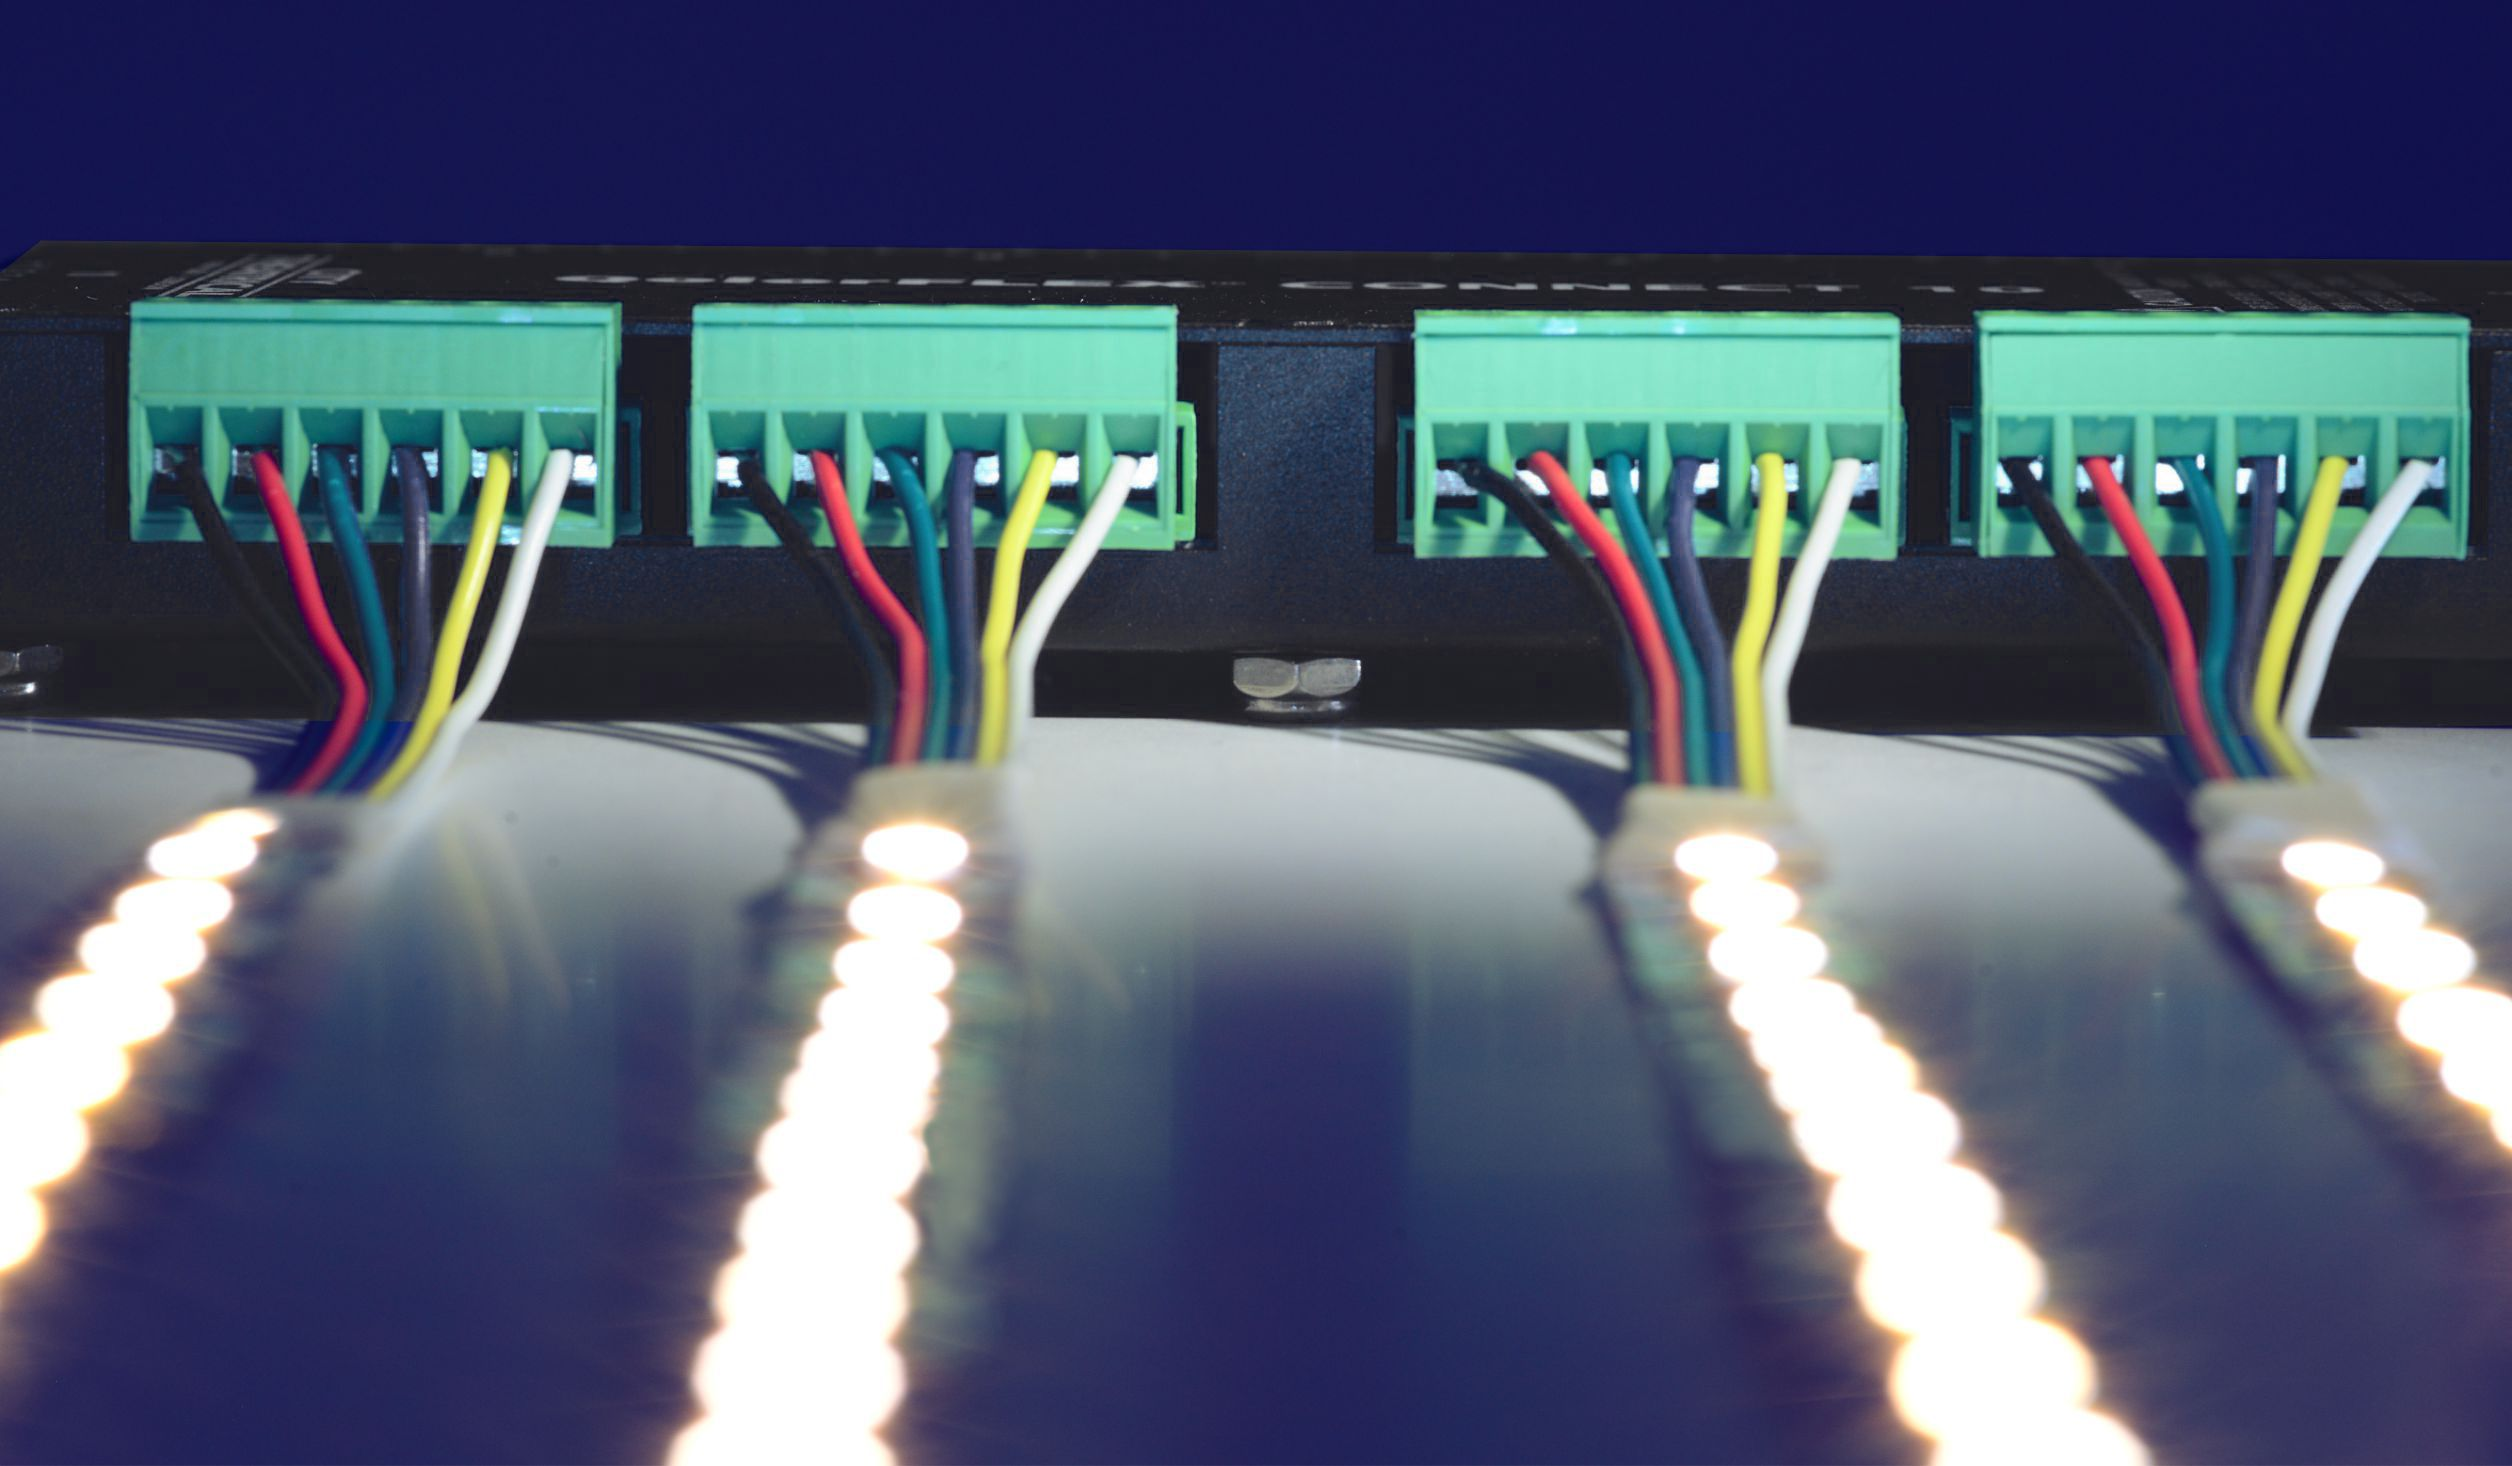 QolorFLEX Connect 10 uses 10 six position Phoenix terminal block connectors to achieve a quick and well-ordered installation.